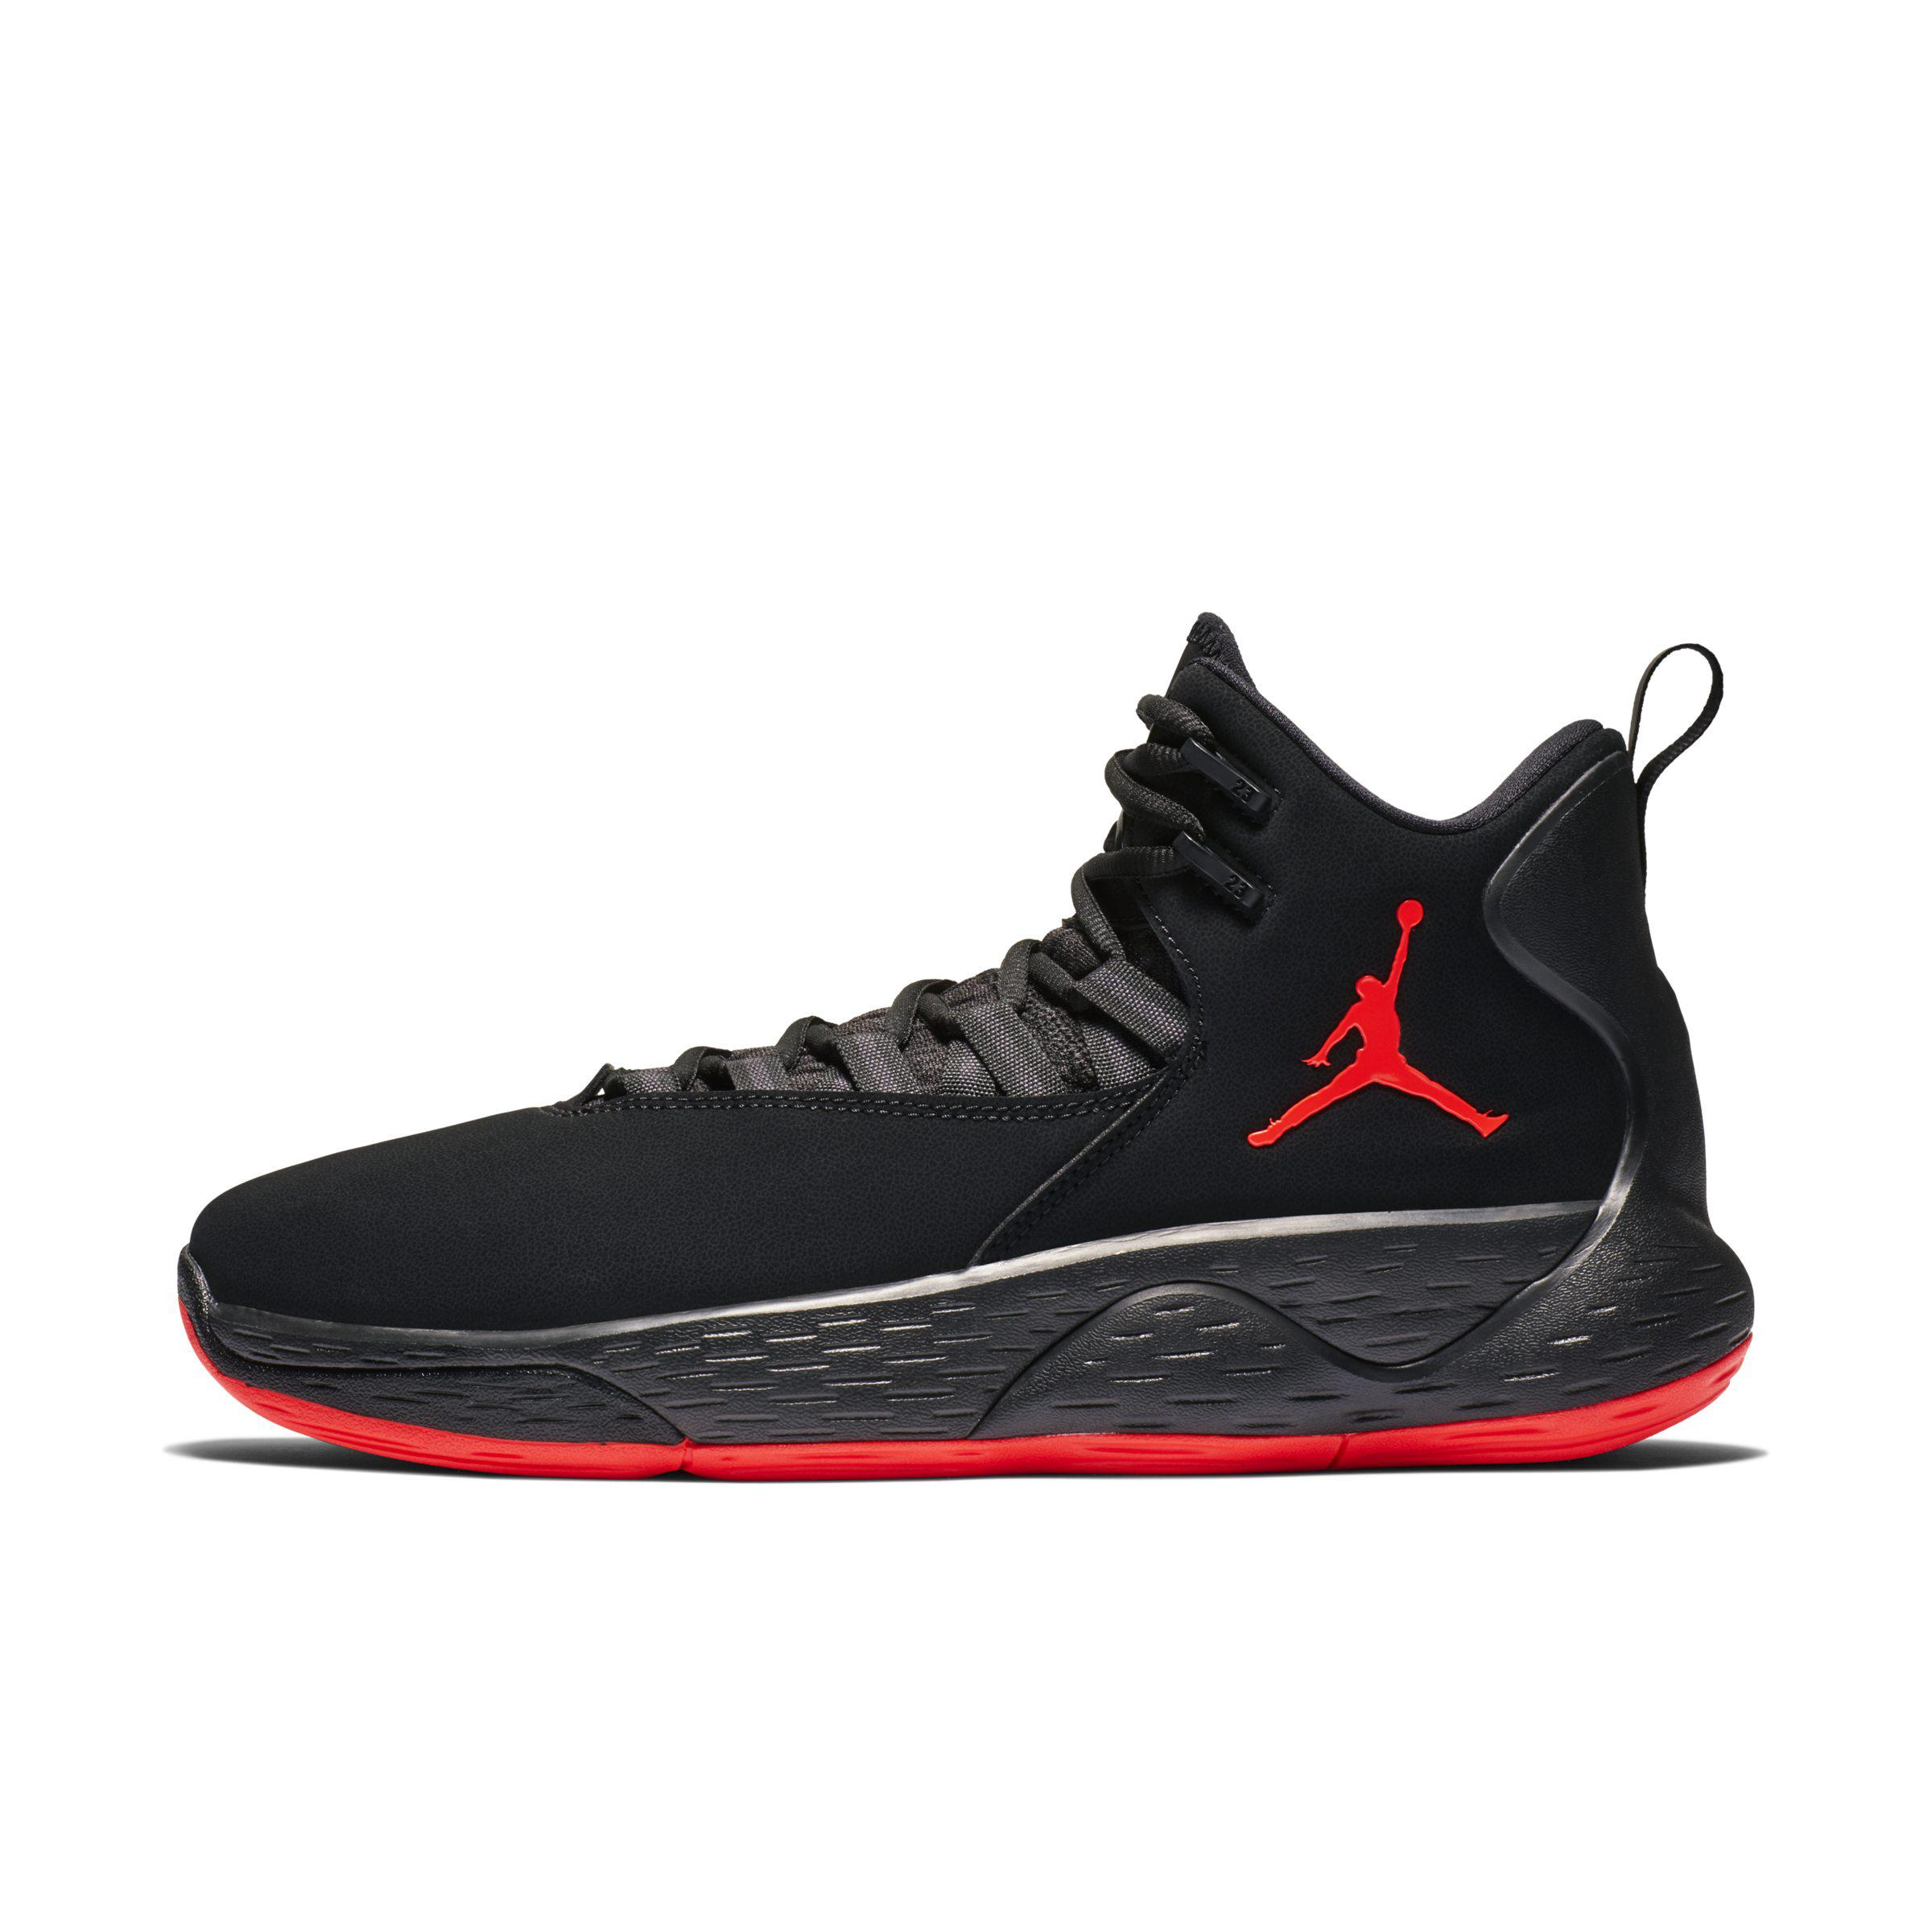 online store 62ba9 5088f Nike Jordan Super.fly Mvp Basketball Shoe in Black for Men - Lyst